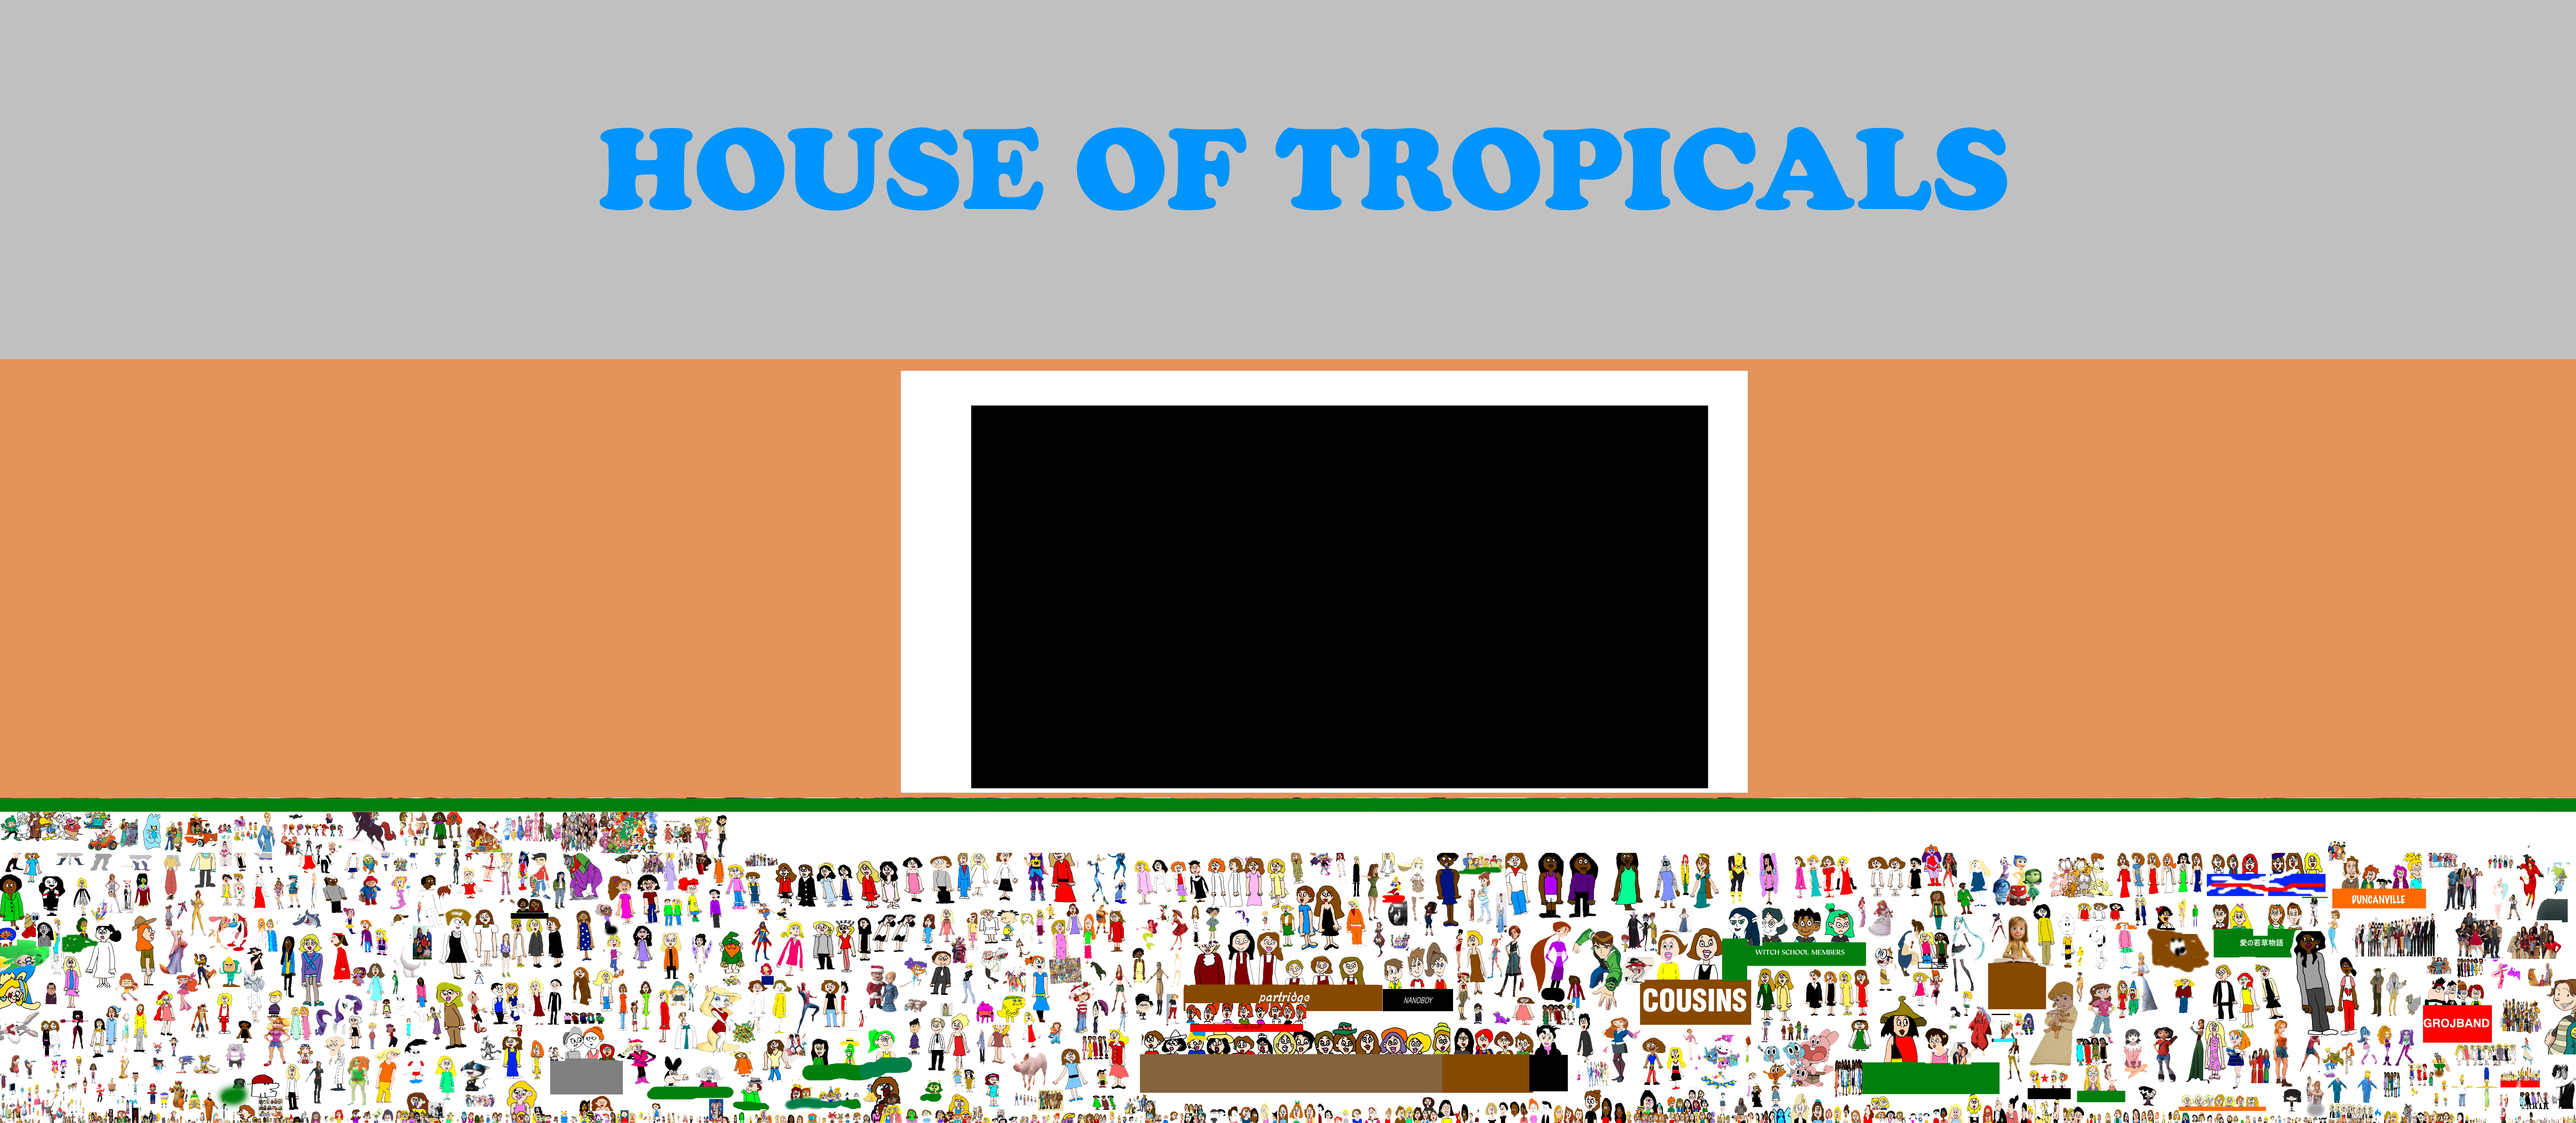 Everyone Going To The House Of Tropicals Aquarium By Mjegameandcomicfan89 On Deviantart